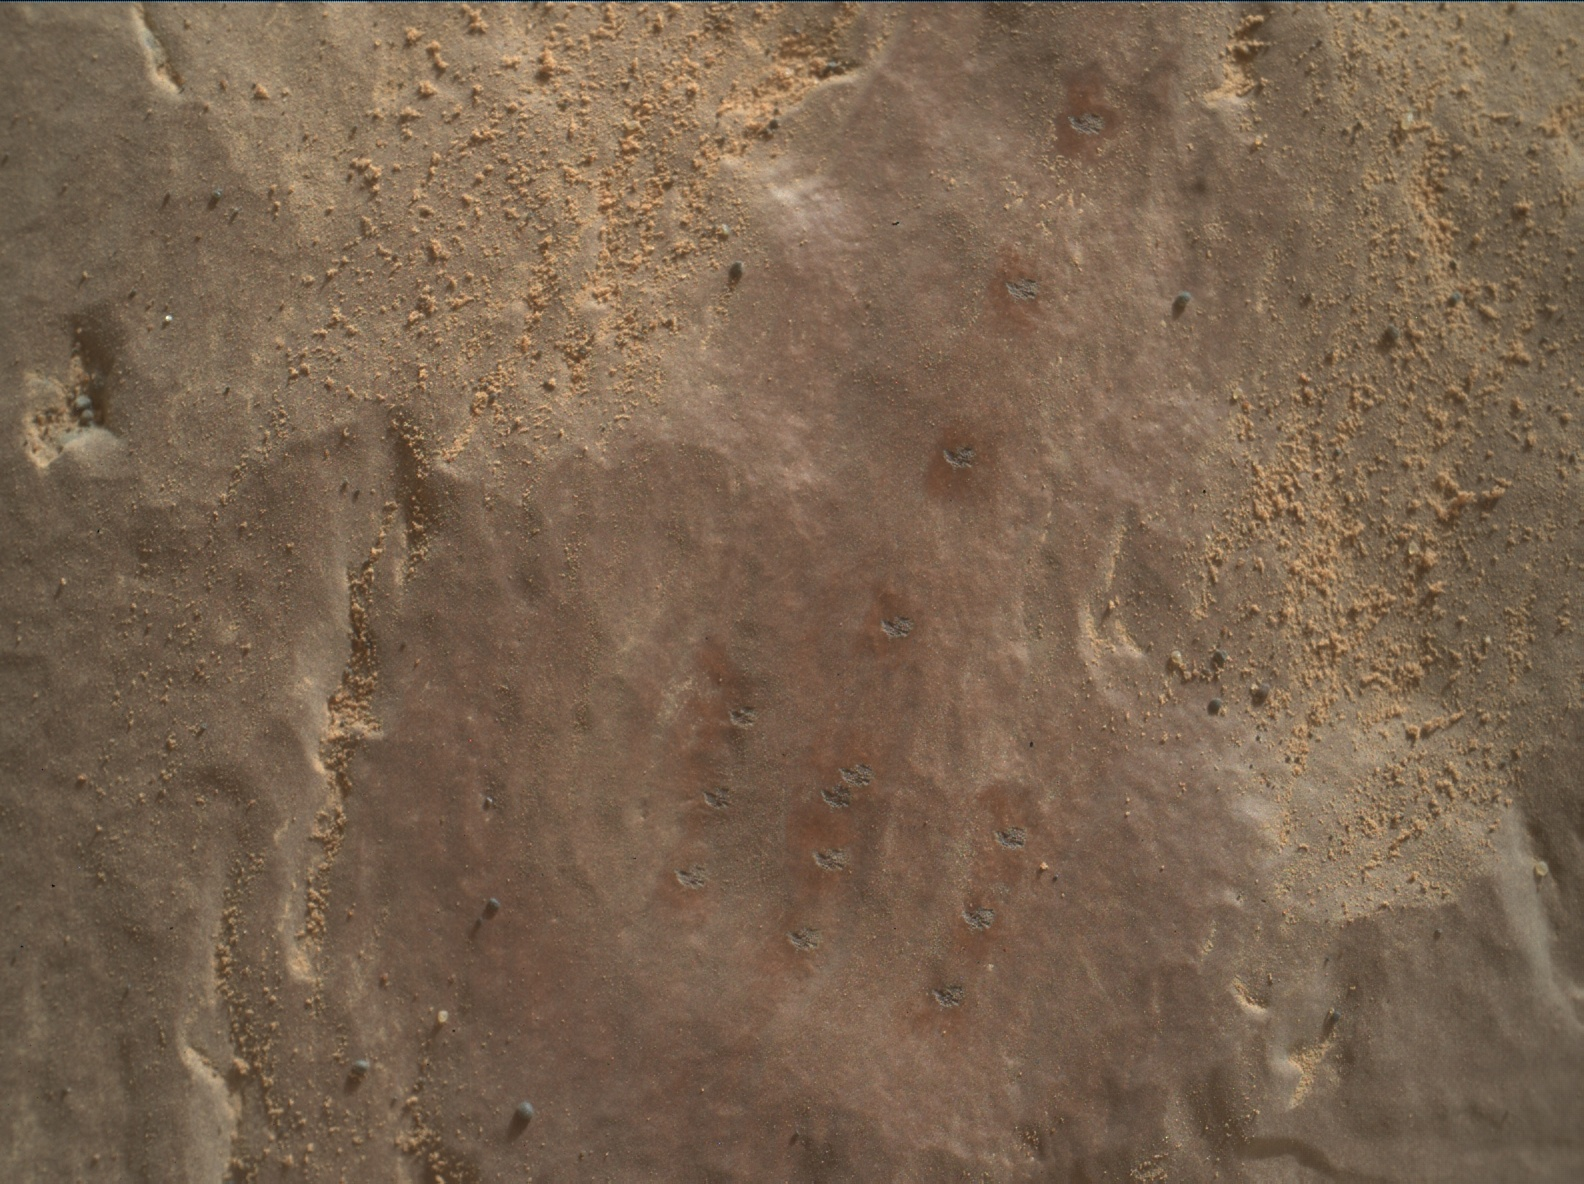 Nasa's Mars rover Curiosity acquired this image using its Mars Hand Lens Imager (MAHLI) on Sol 2363